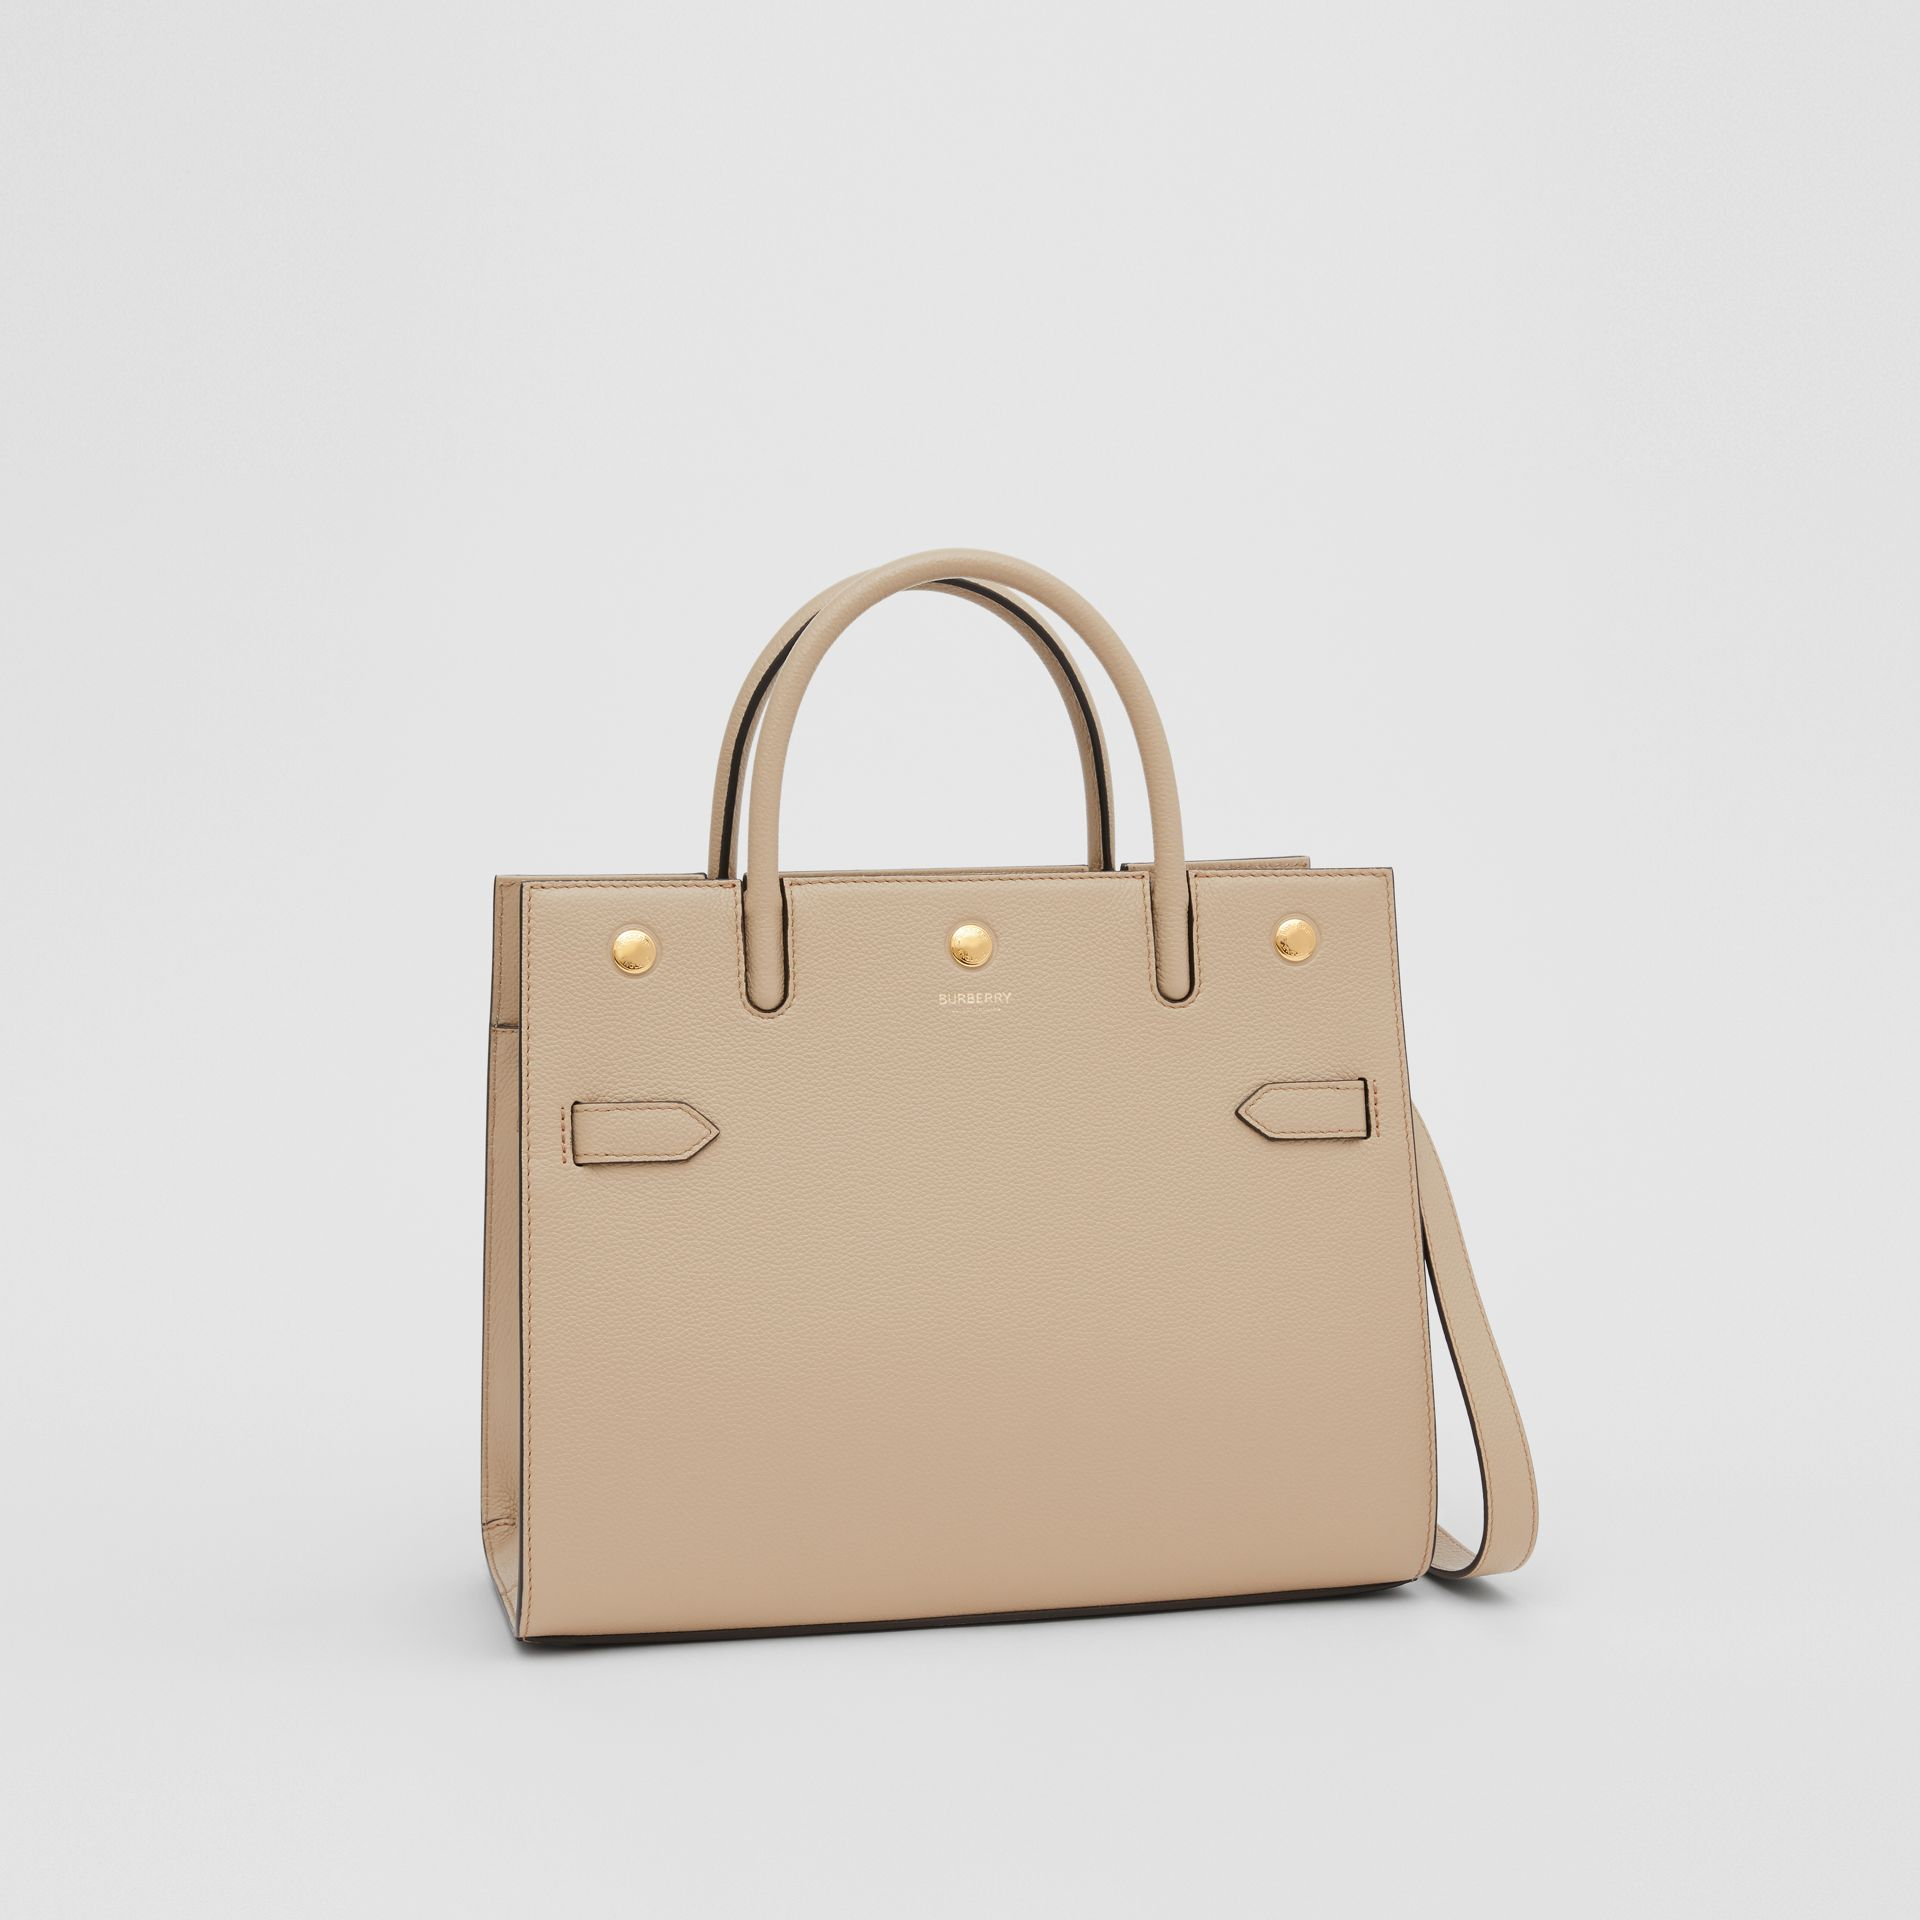 Small Leather Two-handle Title Bag in Light Beige - Women | Burberry - gallery image 6